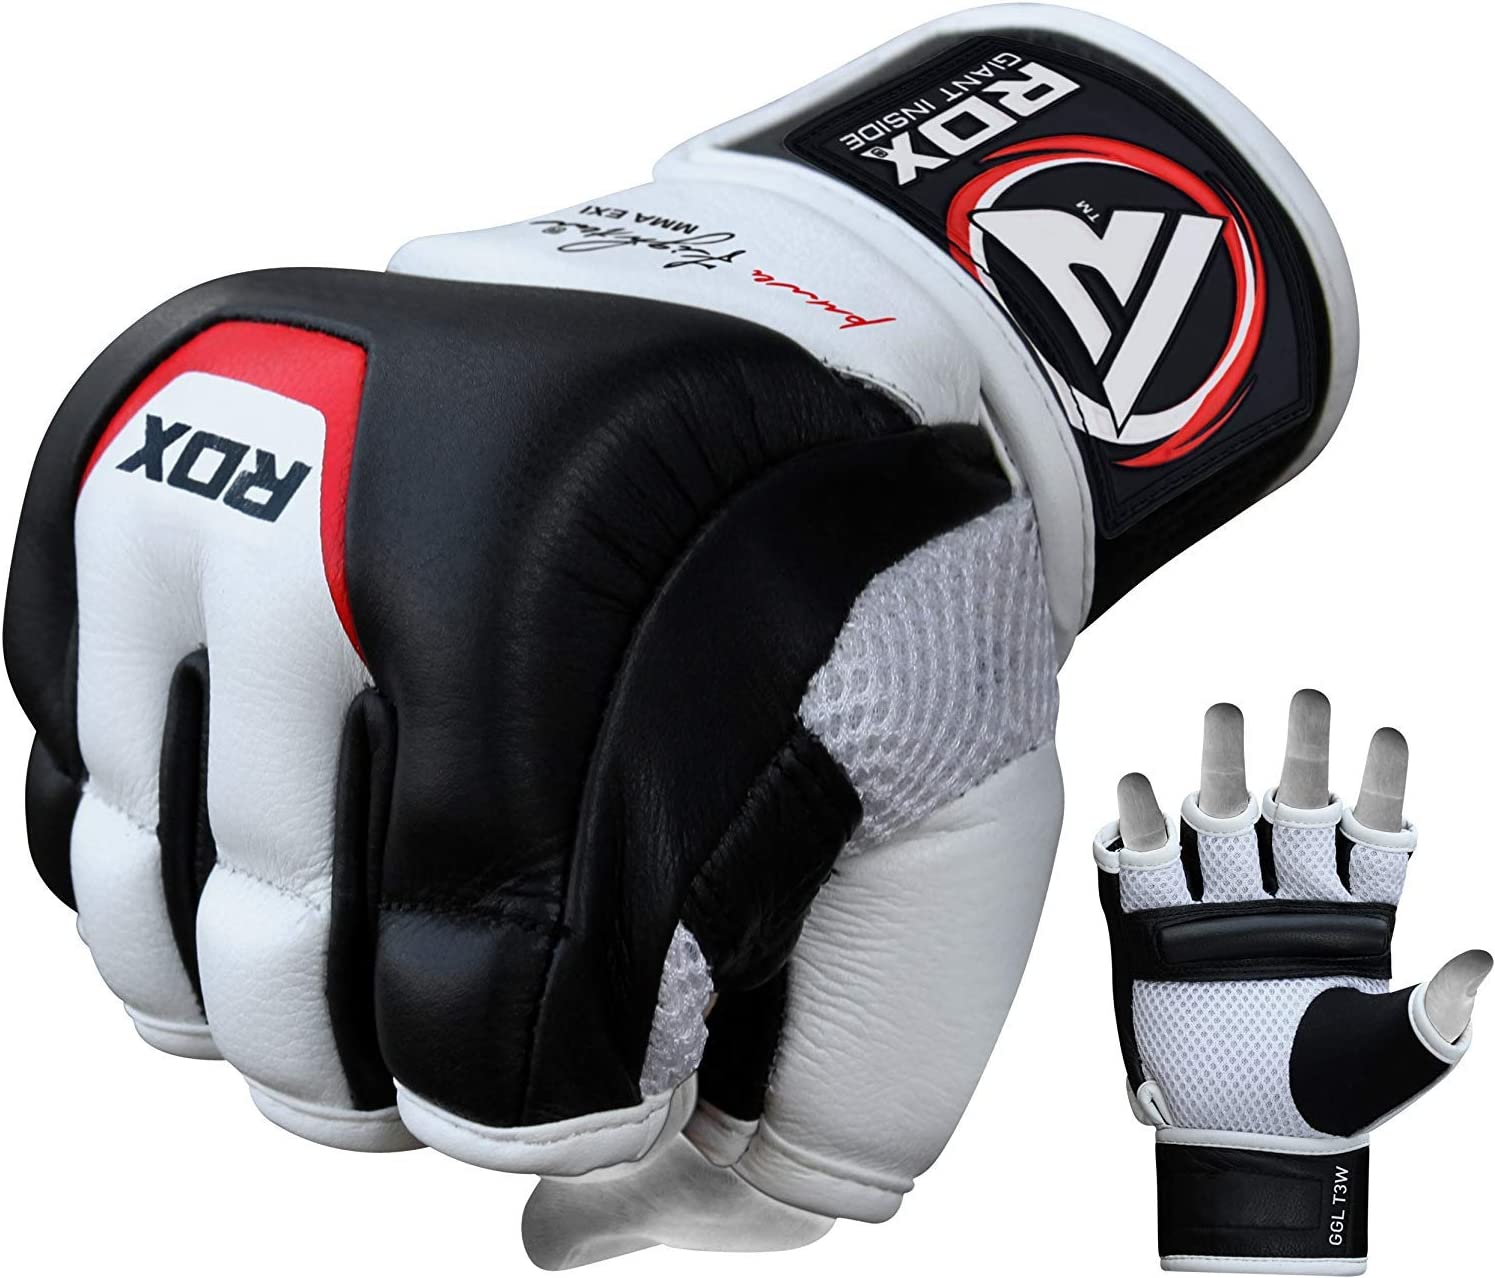 RDX MMA Gloves for Martial Arts Training and Sparring, Cowhide Leather Mitts for Grappling, Kickboxing, Muay Thai, Punching Bag & Cage Fighting : Sports & Outdoors